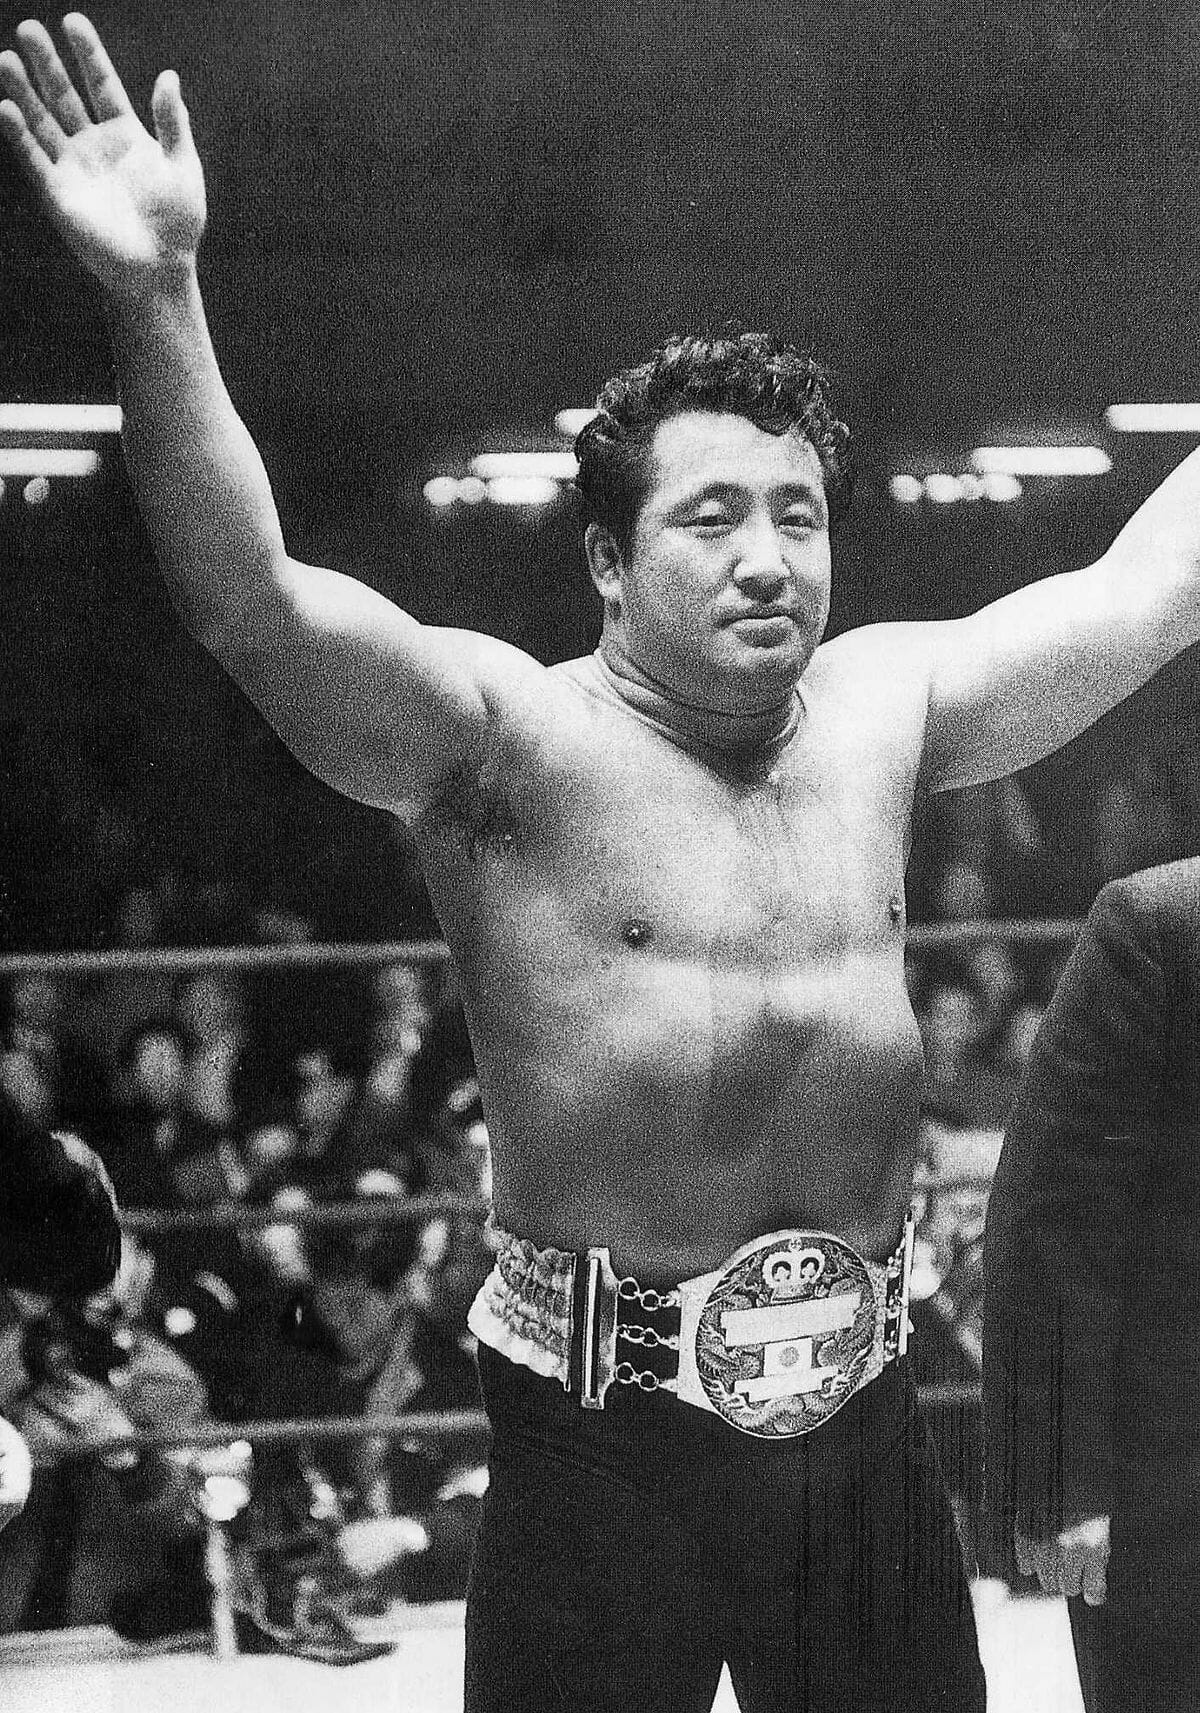 Rikidōzan was a Korean Japanese professional wrestler known as The Father of Puroresu and one of the most influential men in professional wrestling history. Sadly, Sadly, he would die on December 8, 1963 after being stabbed by Katsushi Murata, a member of the ninkyō dantai Sumiyoshi-ikka, a sub branch of the yakuza (Japanese mafia).